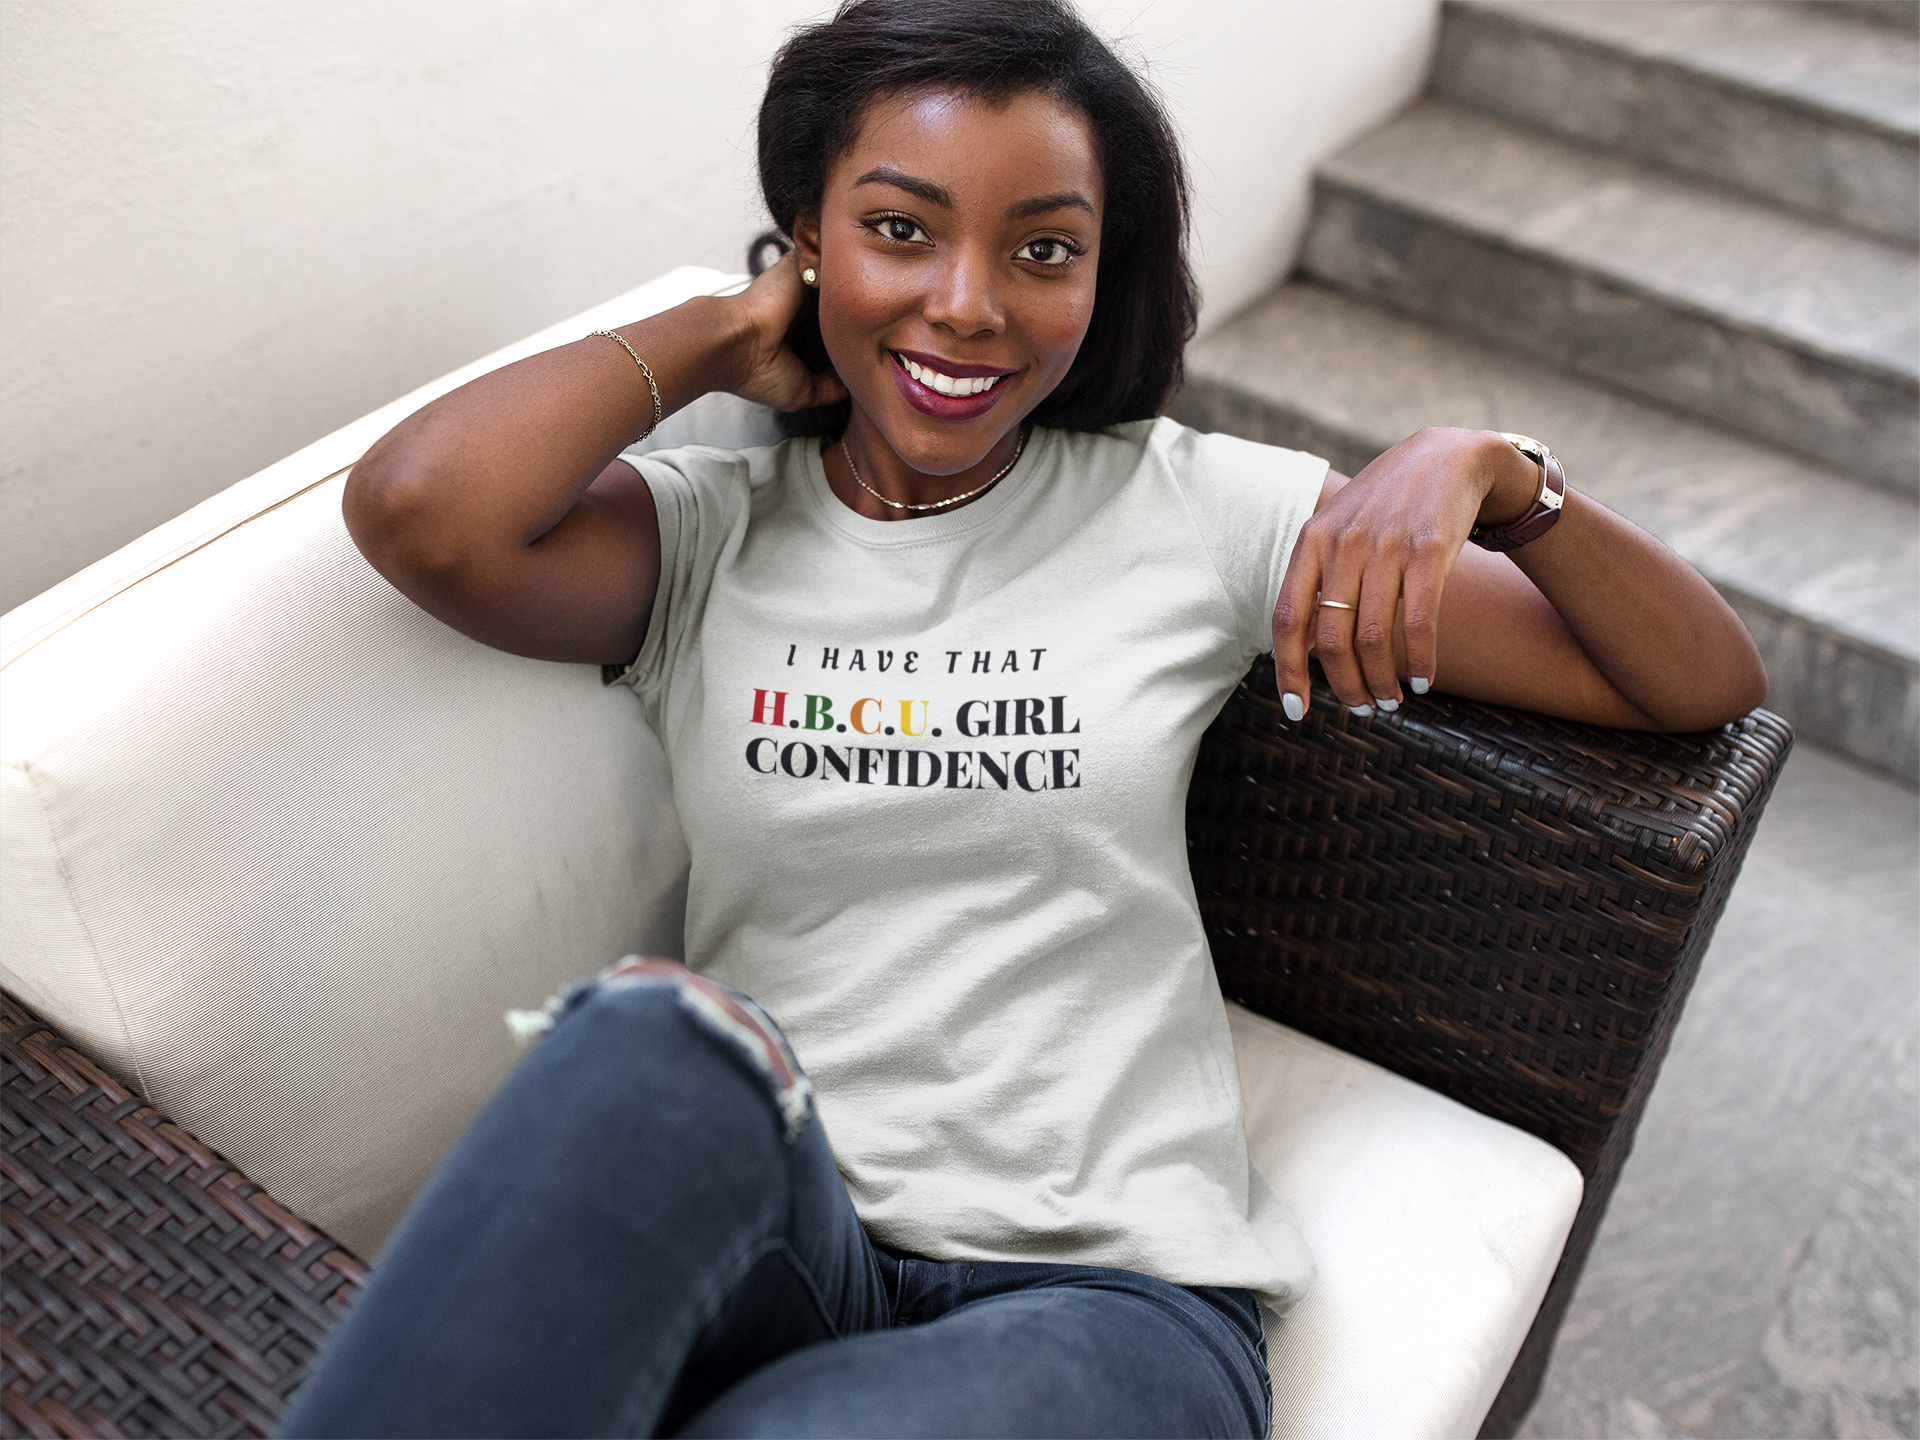 HBCU GIRL Confidence Short Sleeve T Shirt One Done Tees 1920x1440